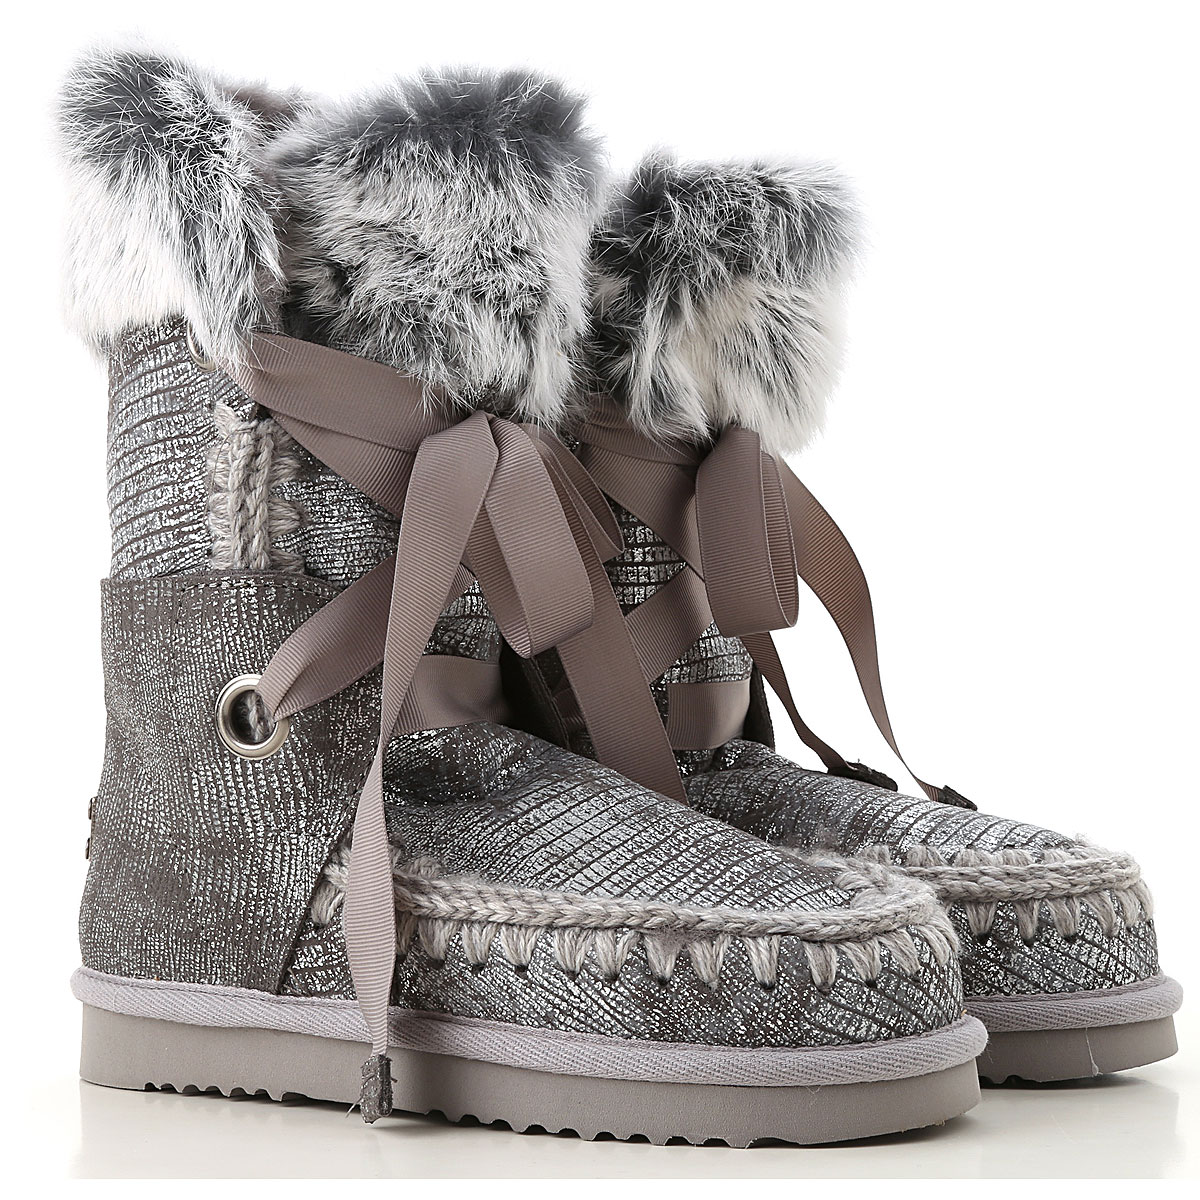 Image of Mou Boots for Women, Booties, Silver, suede, 2017, EUR 36 - UK 3 - USA 5.5 EUR 37 - UK 4 - USA 6.5 EUR 38 - UK 5 - USA 7.5 EUR 39 - UK 6 - USA 8.5 EUR 40 - UK 7 - USA 9.5